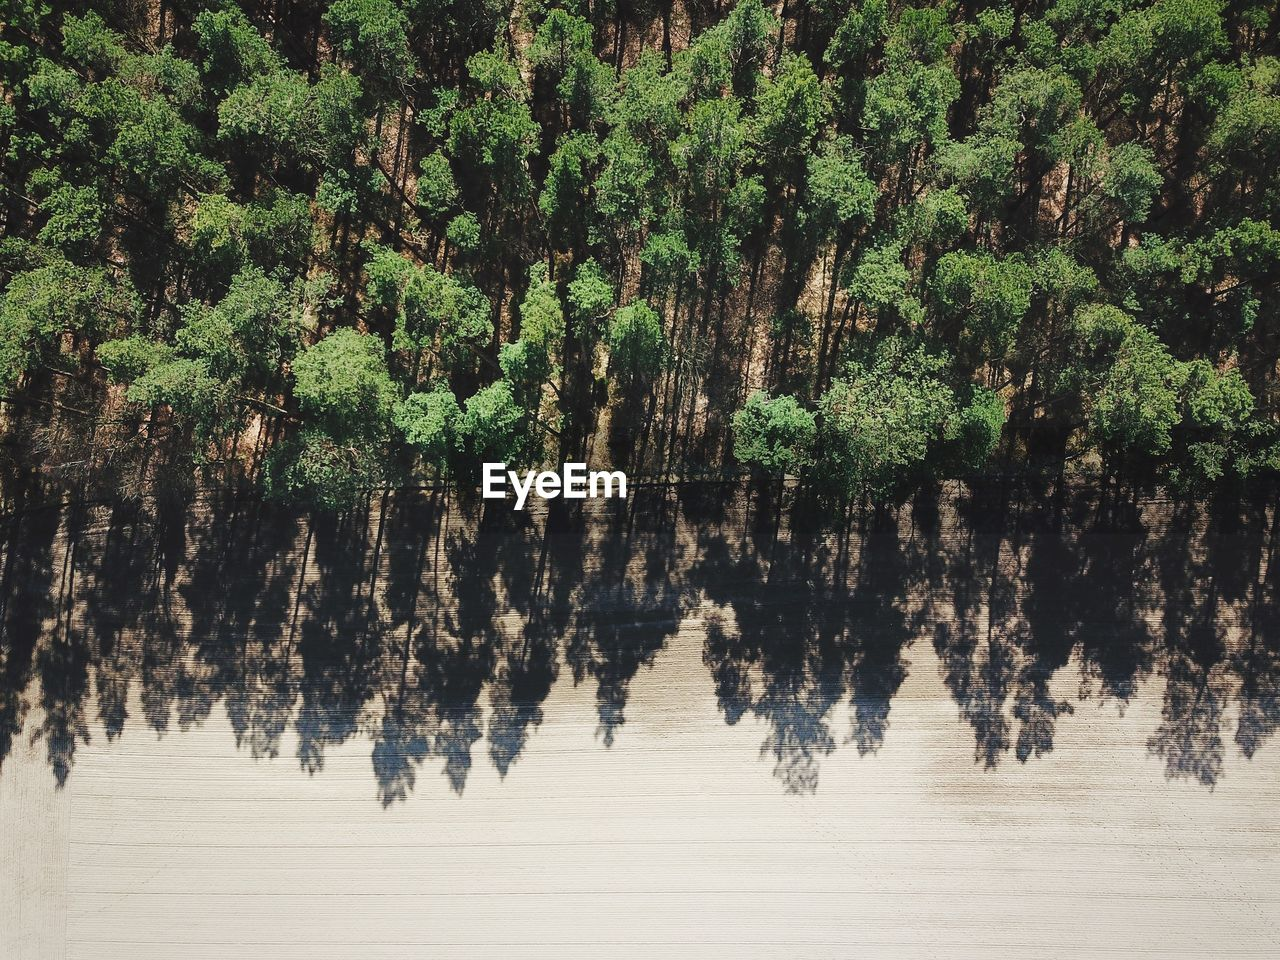 Aerial View Of Trees In Forest During Sunny Day